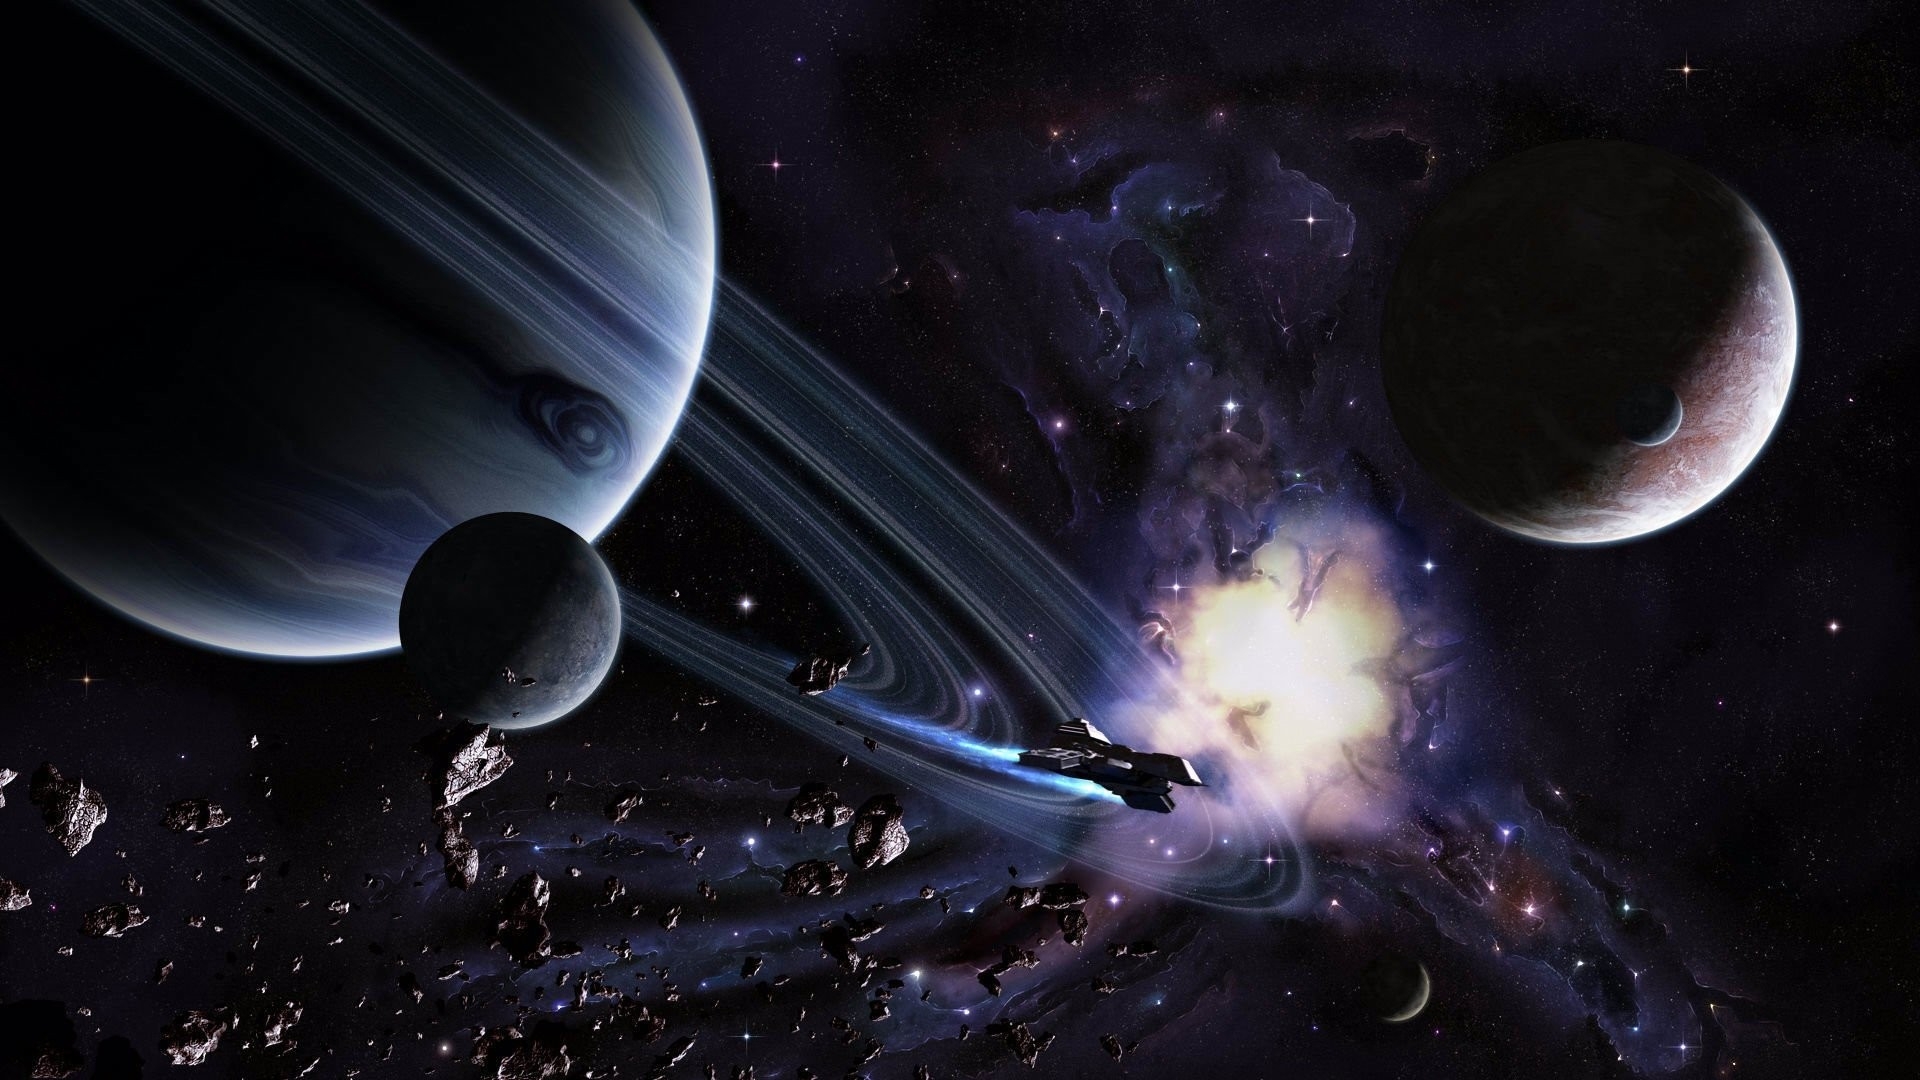 Download Wallpaper 2780x2780 Planet Galaxy Universe: Animated Stars Wallpaper (71+ Images